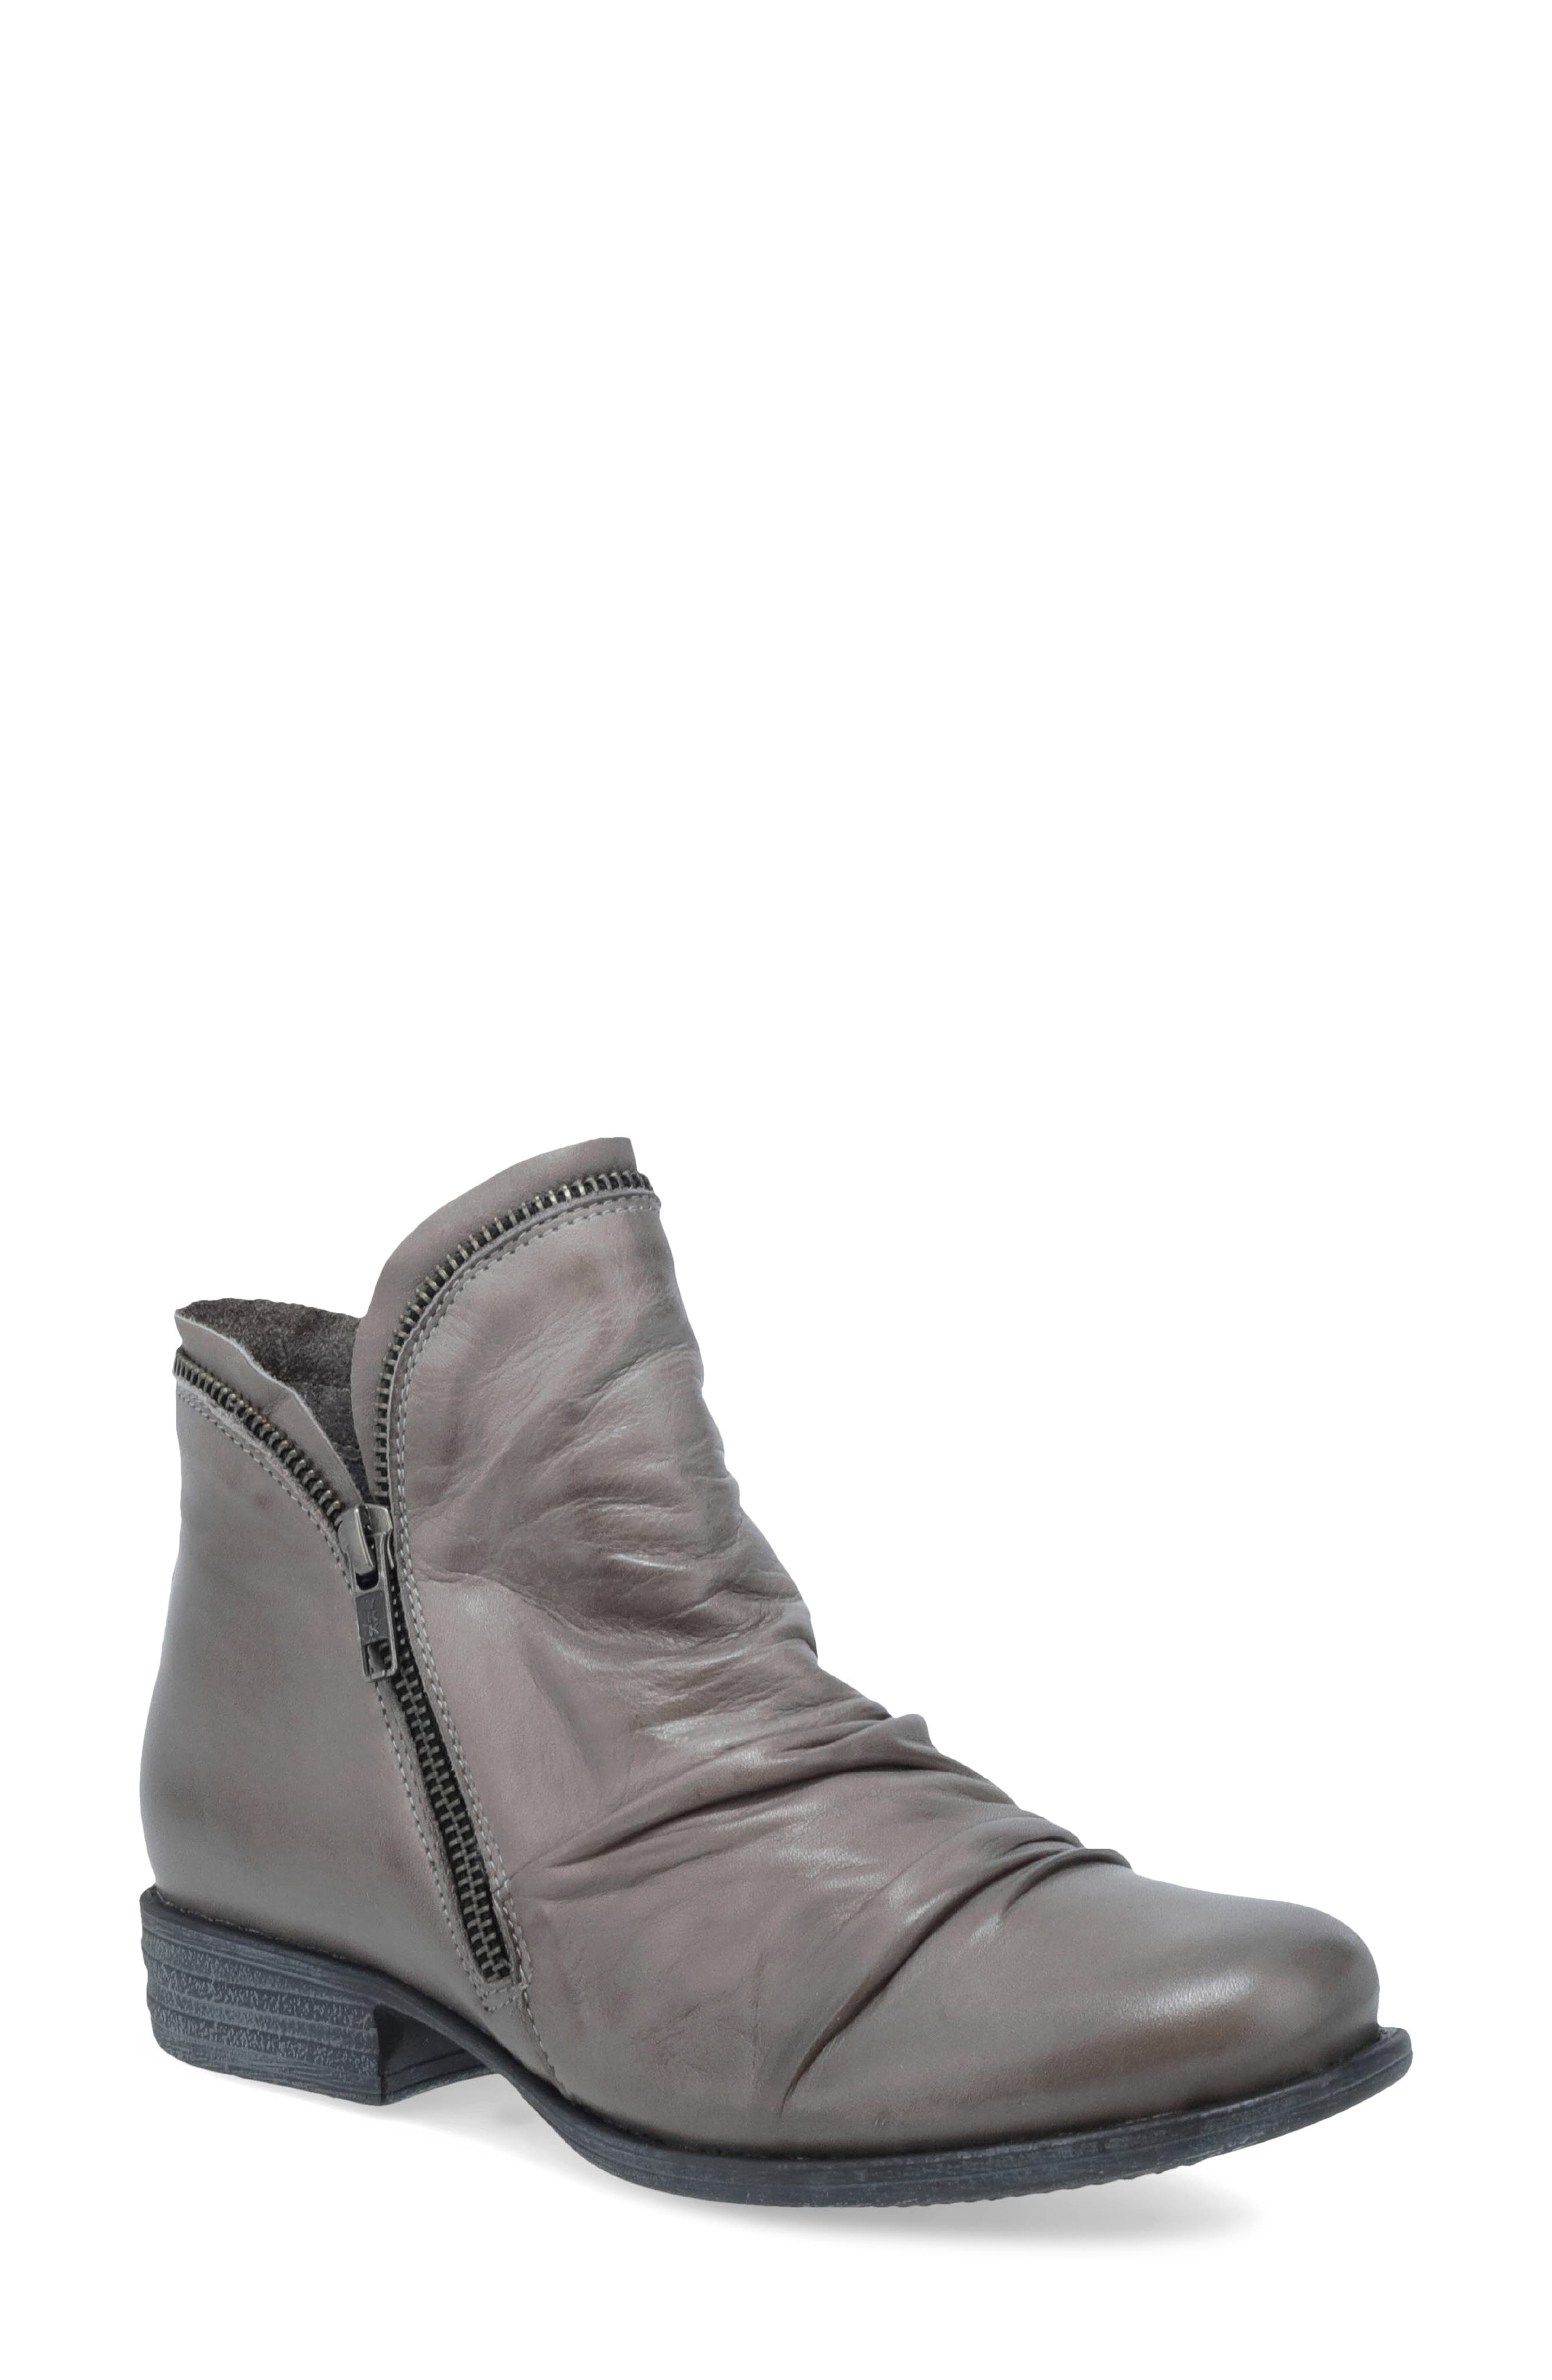 Exposed zip teeth trace the cuff of a stylishly slouchy ankle boot done in rich leather. Style Name: Miz Mooz \\\'Luna\\\' Ankle Boot (Women). Style Number: 1138933. Available in stores.